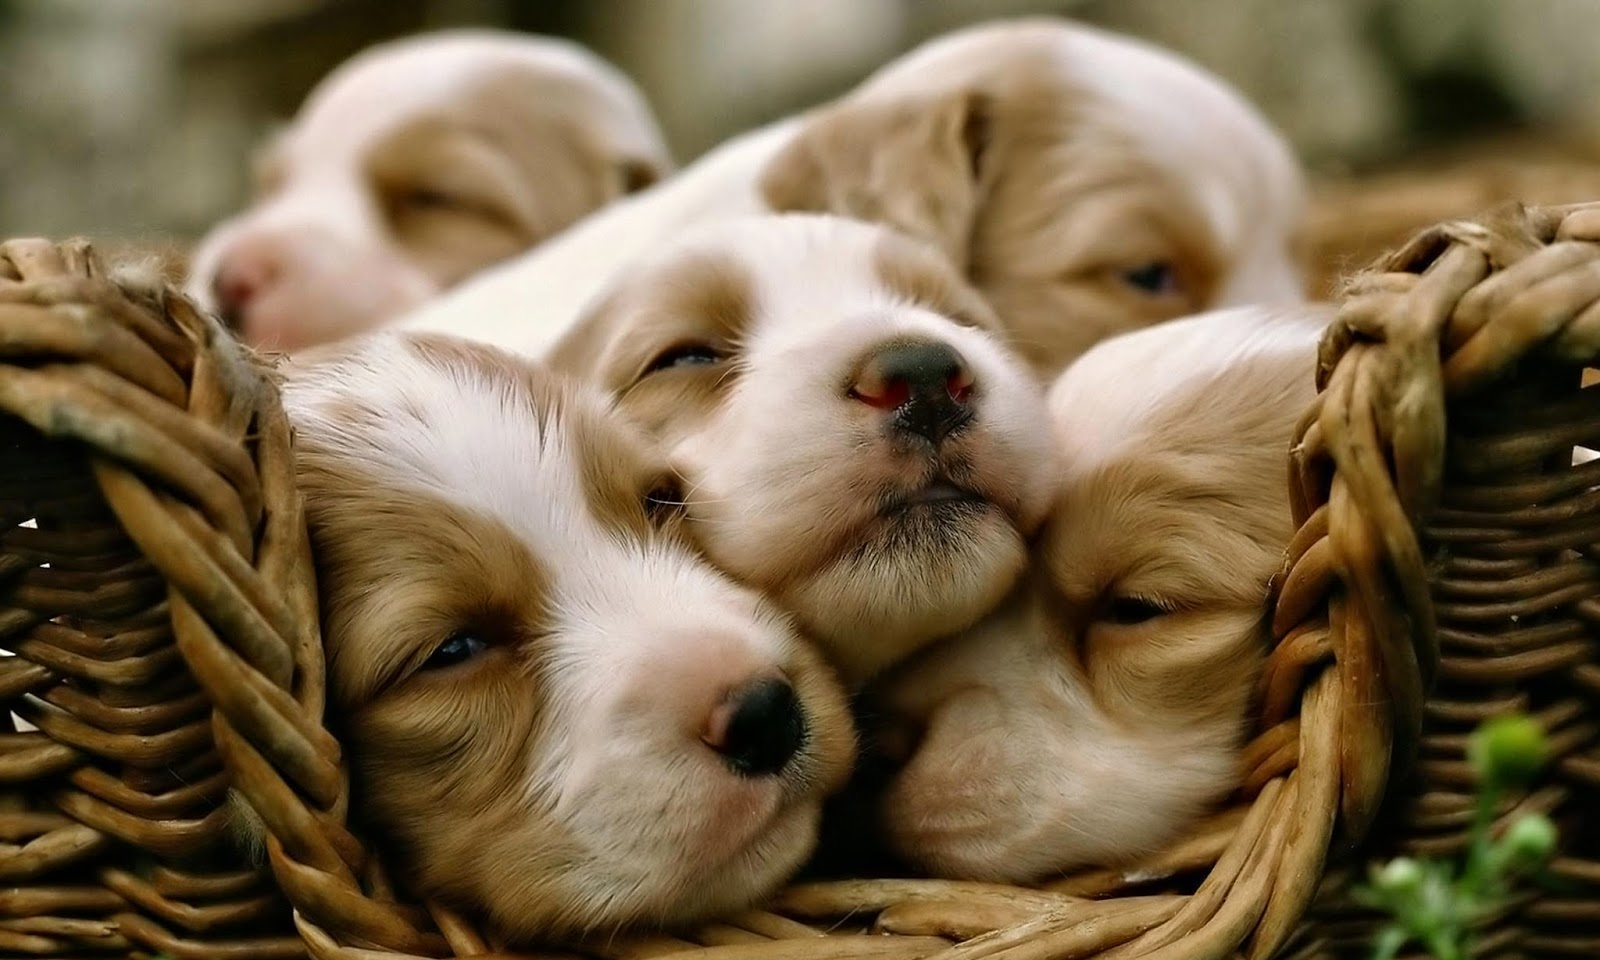 Puppy Photography 1080p Wallpapers